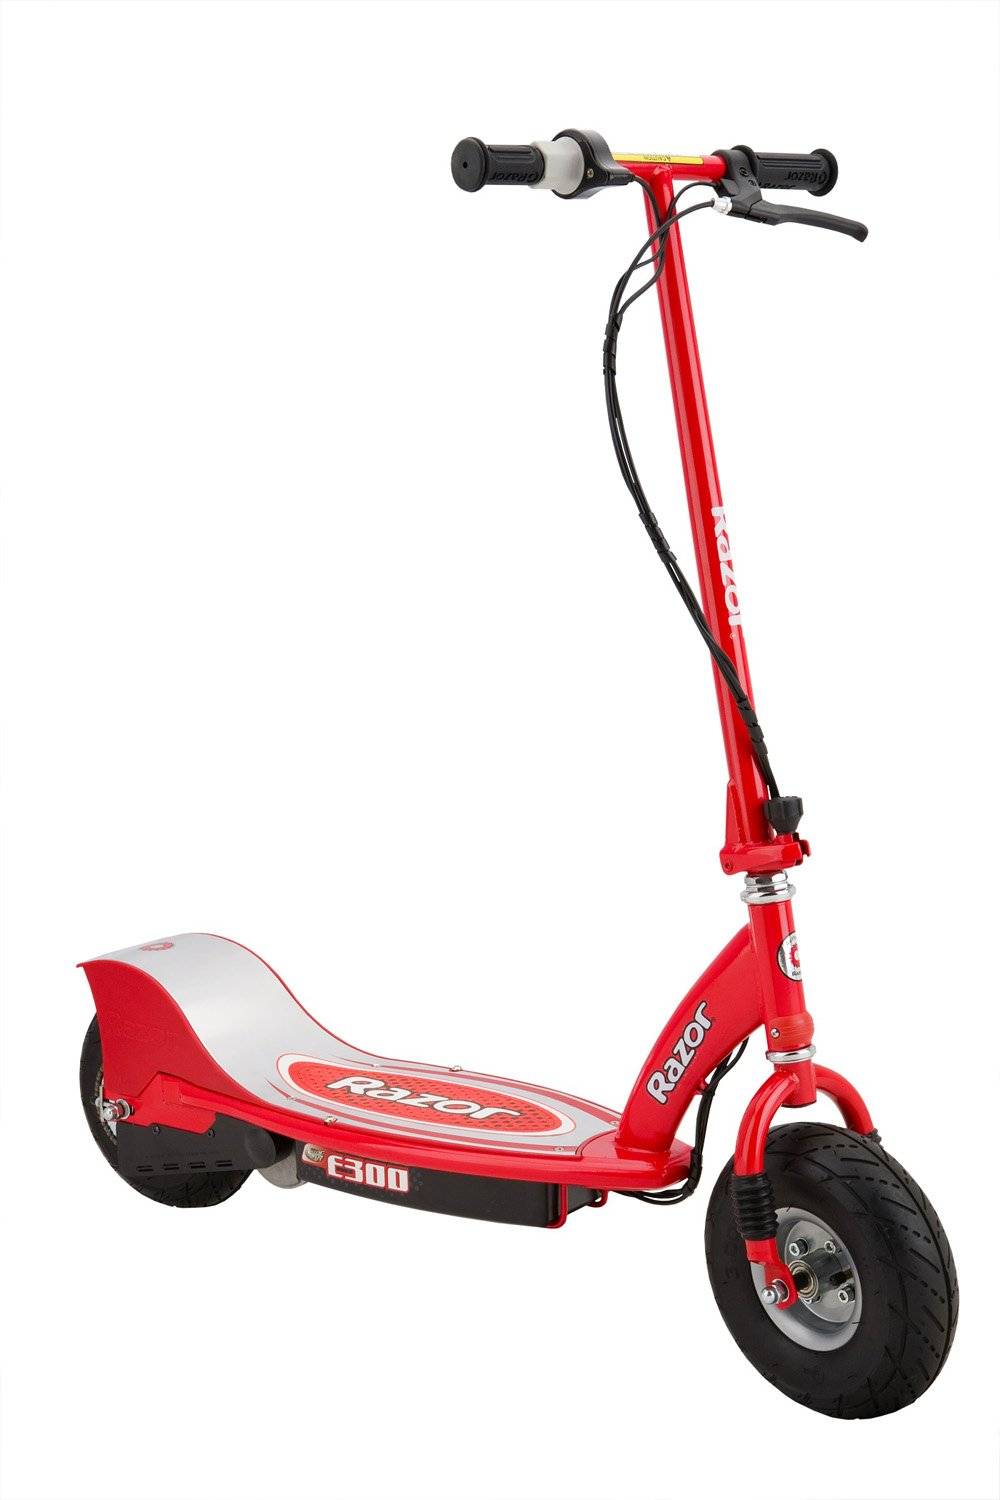 Razor E300 24V Rechargeable Electric Motorized Red Scooter + V17 Youth Helmet by Razor (Image #2)